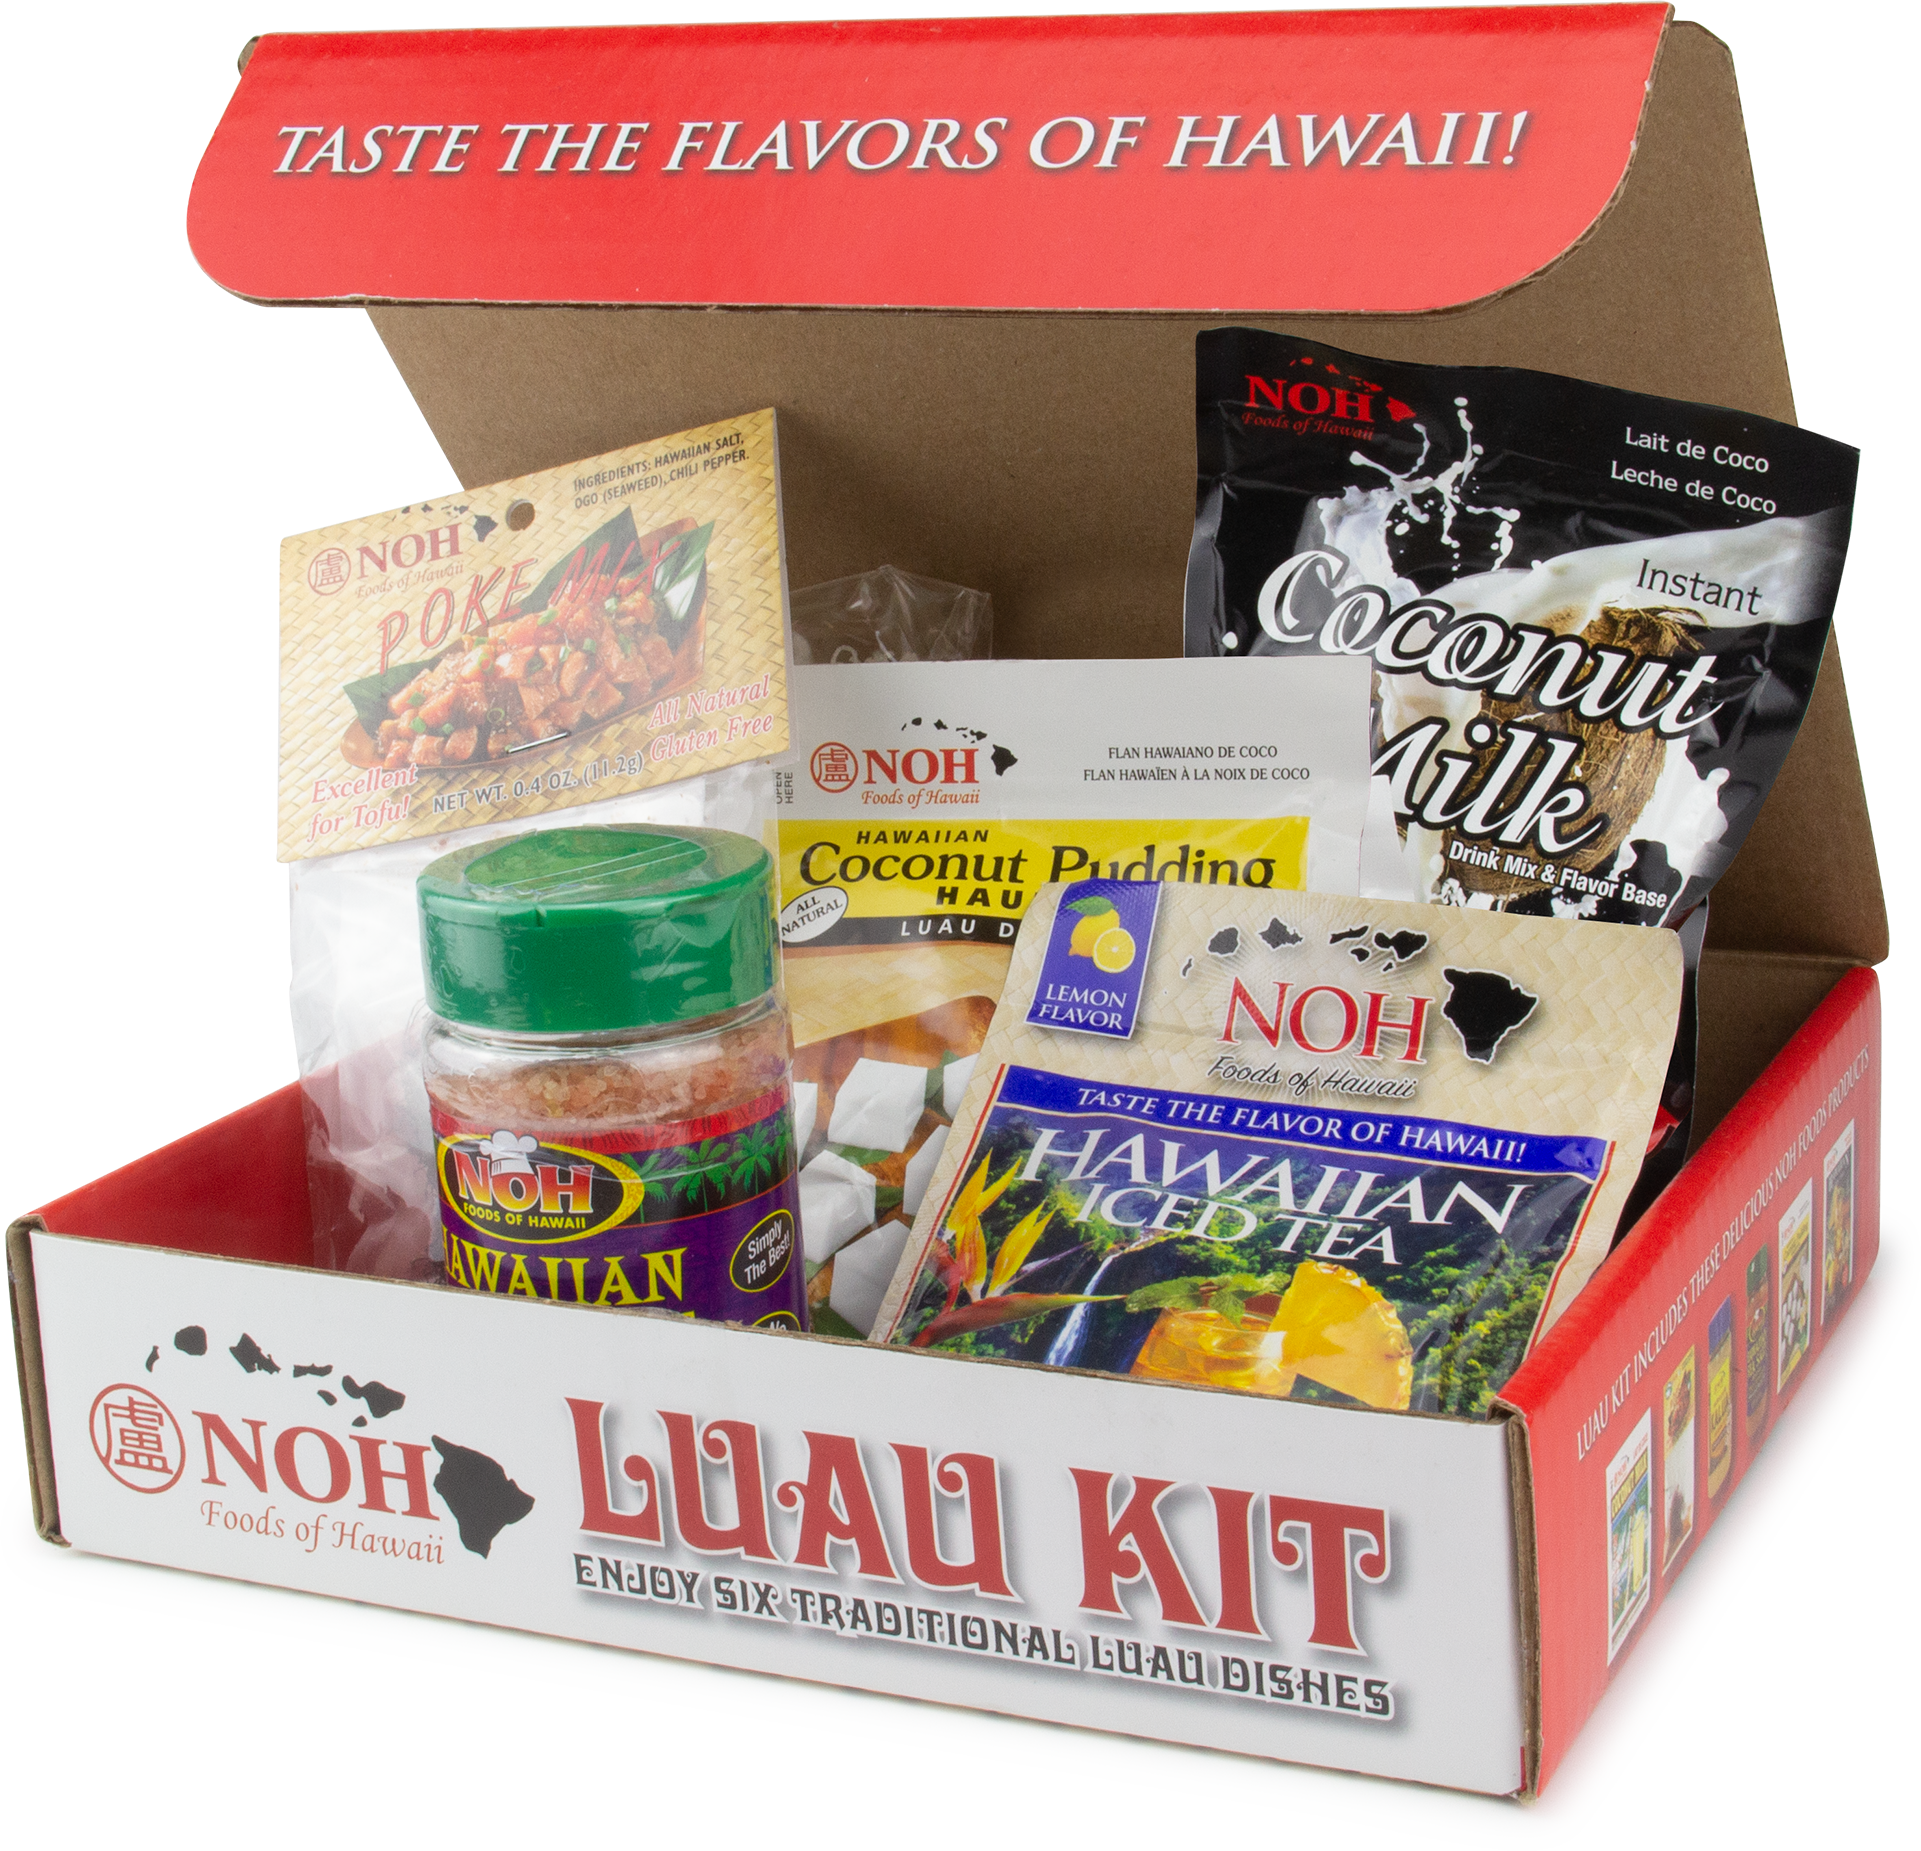 open luau kit box with it's contents